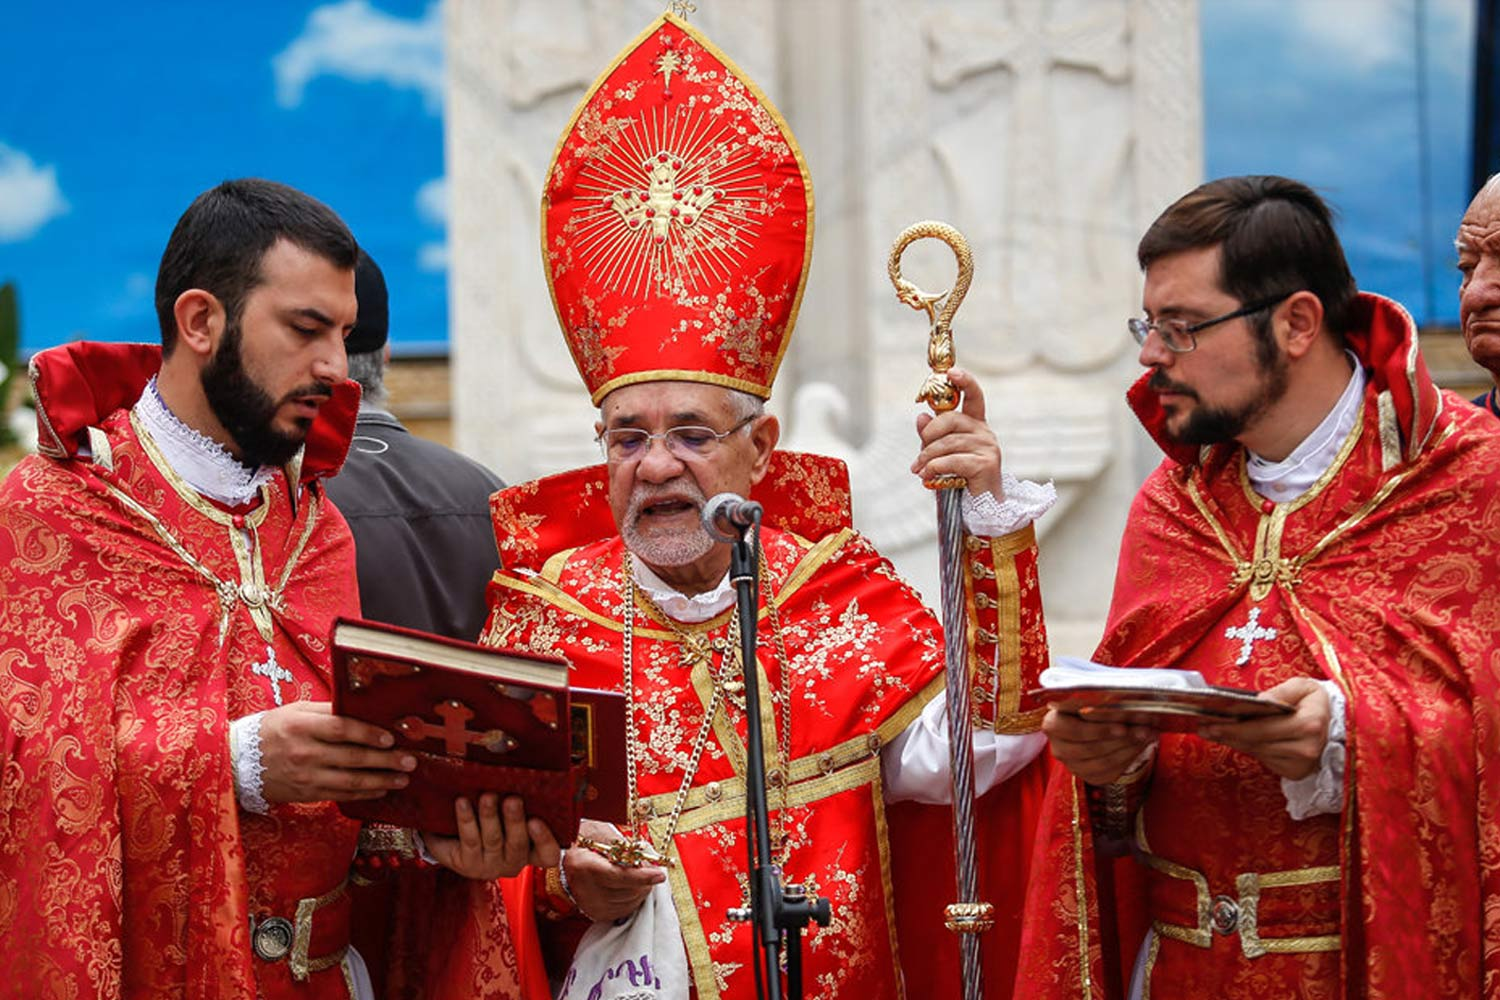 Armenians in Tehran's St. Sarkis Cathedral